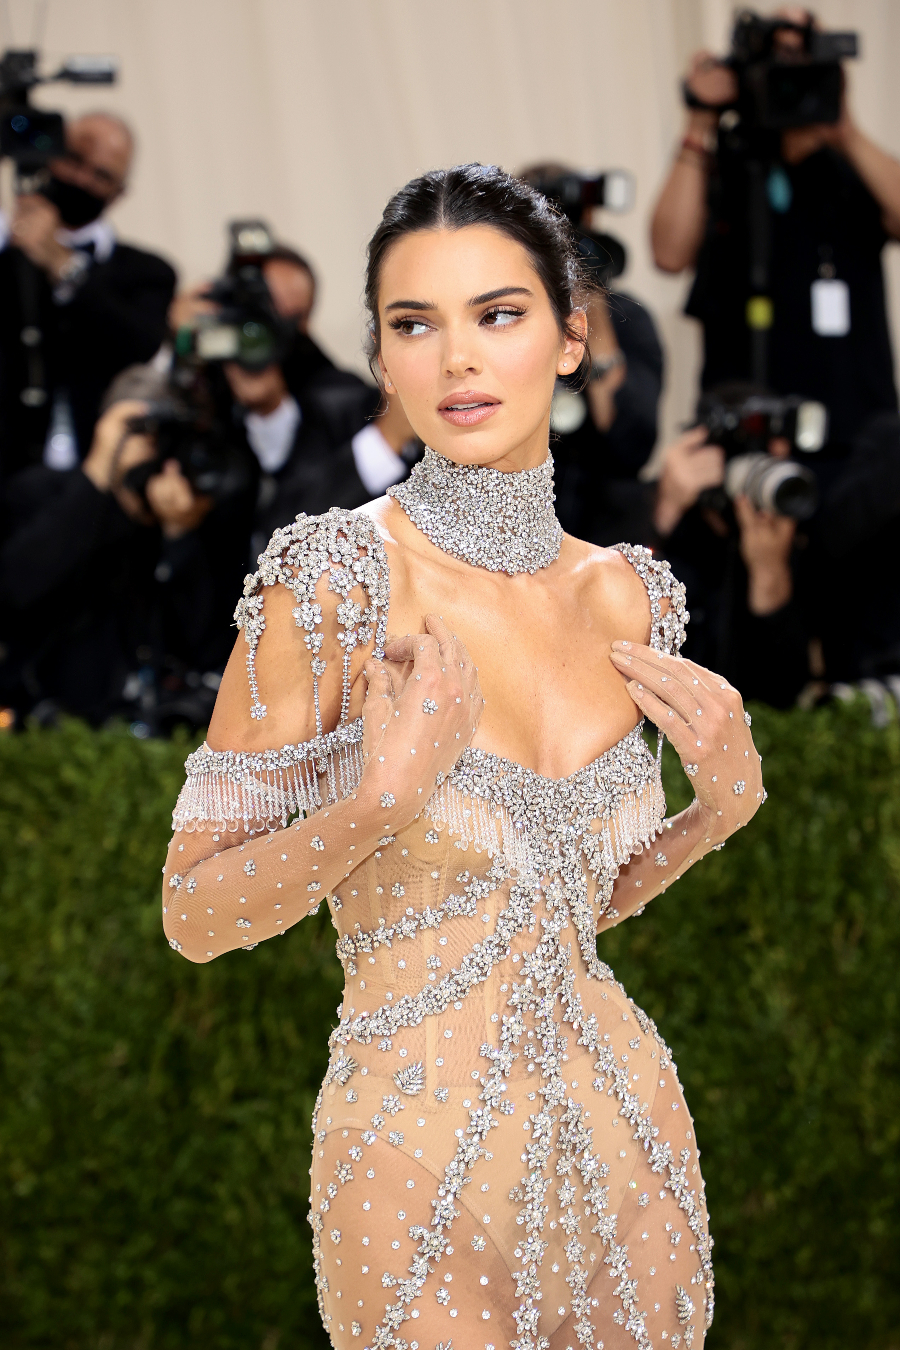 The 2021 Met Gala Celebrating In America: A Lexicon Of Fashion - Arrivals NEW YORK, NEW YORK - SEPTEMBER 13: Kendall Jenner attends The 2021 Met Gala Celebrating In America: A Lexicon Of Fashion at Metropolitan Museum of Art on September 13, 2021 in New York City. (Photo by Dimitrios Kambouris/Getty Images for The Met Museum/Vogue )